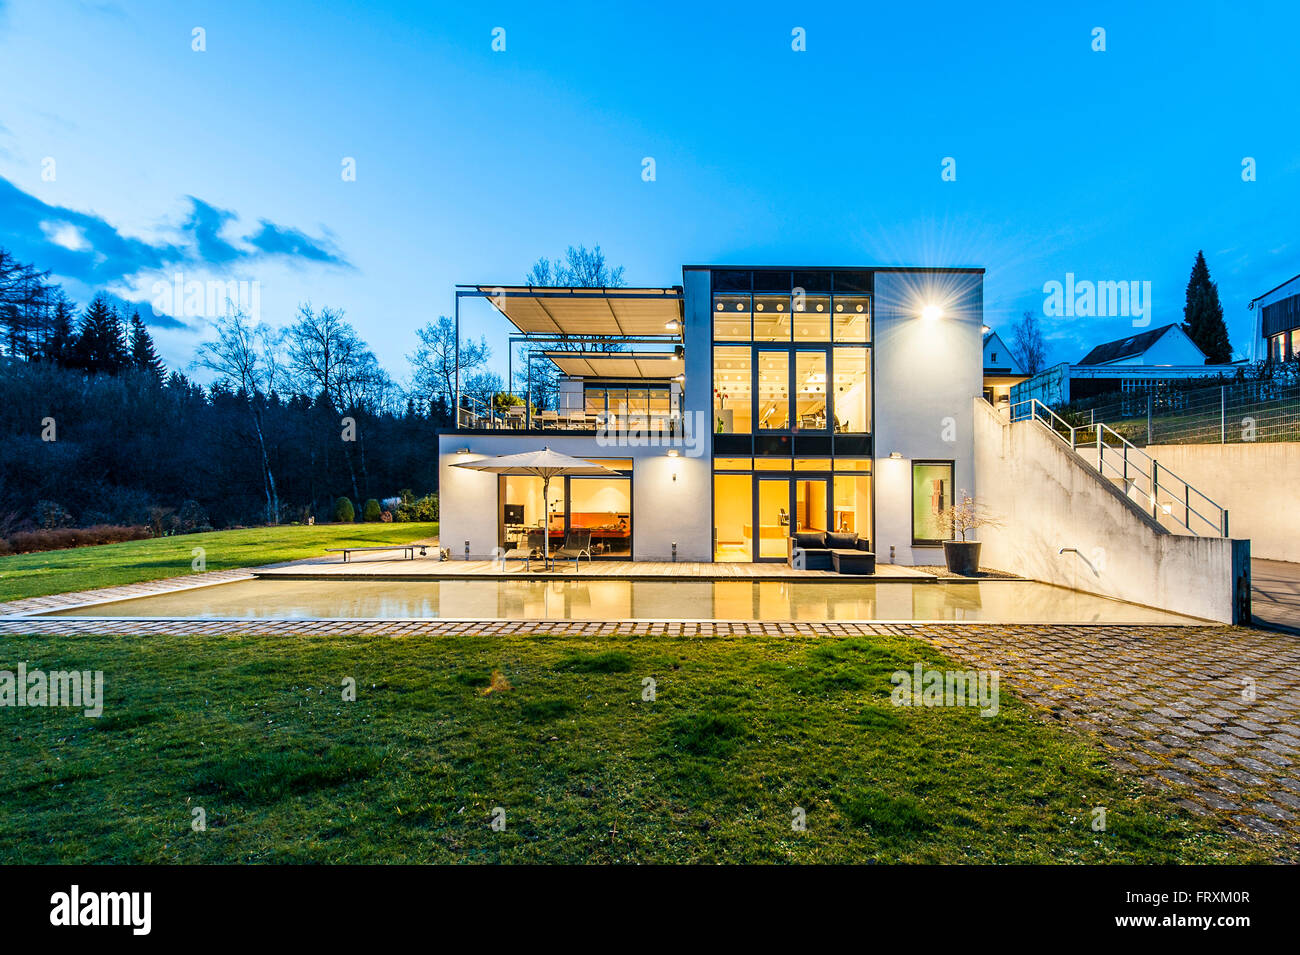 Bauhaus Villa Bauhaus Villa At Dusk Sauerland Germany Stock Photo 100775383